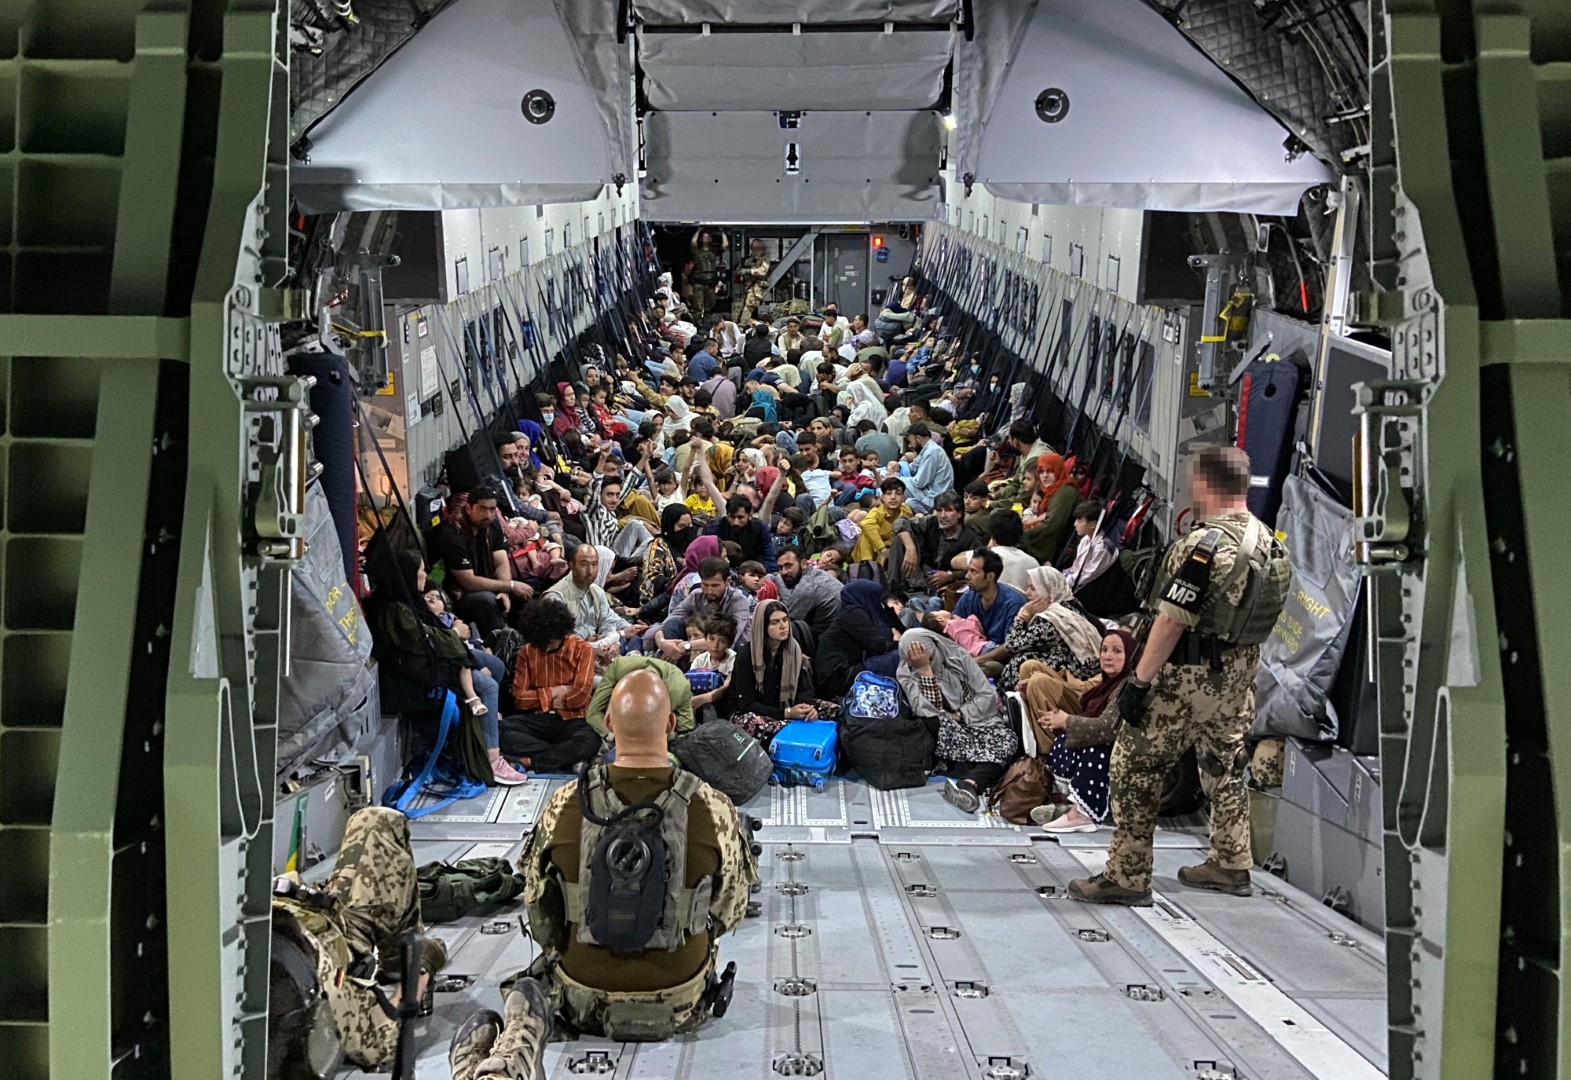 TASHKENT, UZBEKISTAN - AUGUST 22: In this handout image provided by the Bundeswehr, evacuees from Kabul sit inside a military aircraft as they arrive at Tashkent Airport on August 22, 2021 in Tashkent, Uzbekistan. German Chancellor Merkel said Germany must urgently evacuate up to 10,000 people from Afghanistan for which it is responsible. (Photo by Handout/Bundeswehr via Getty Images)